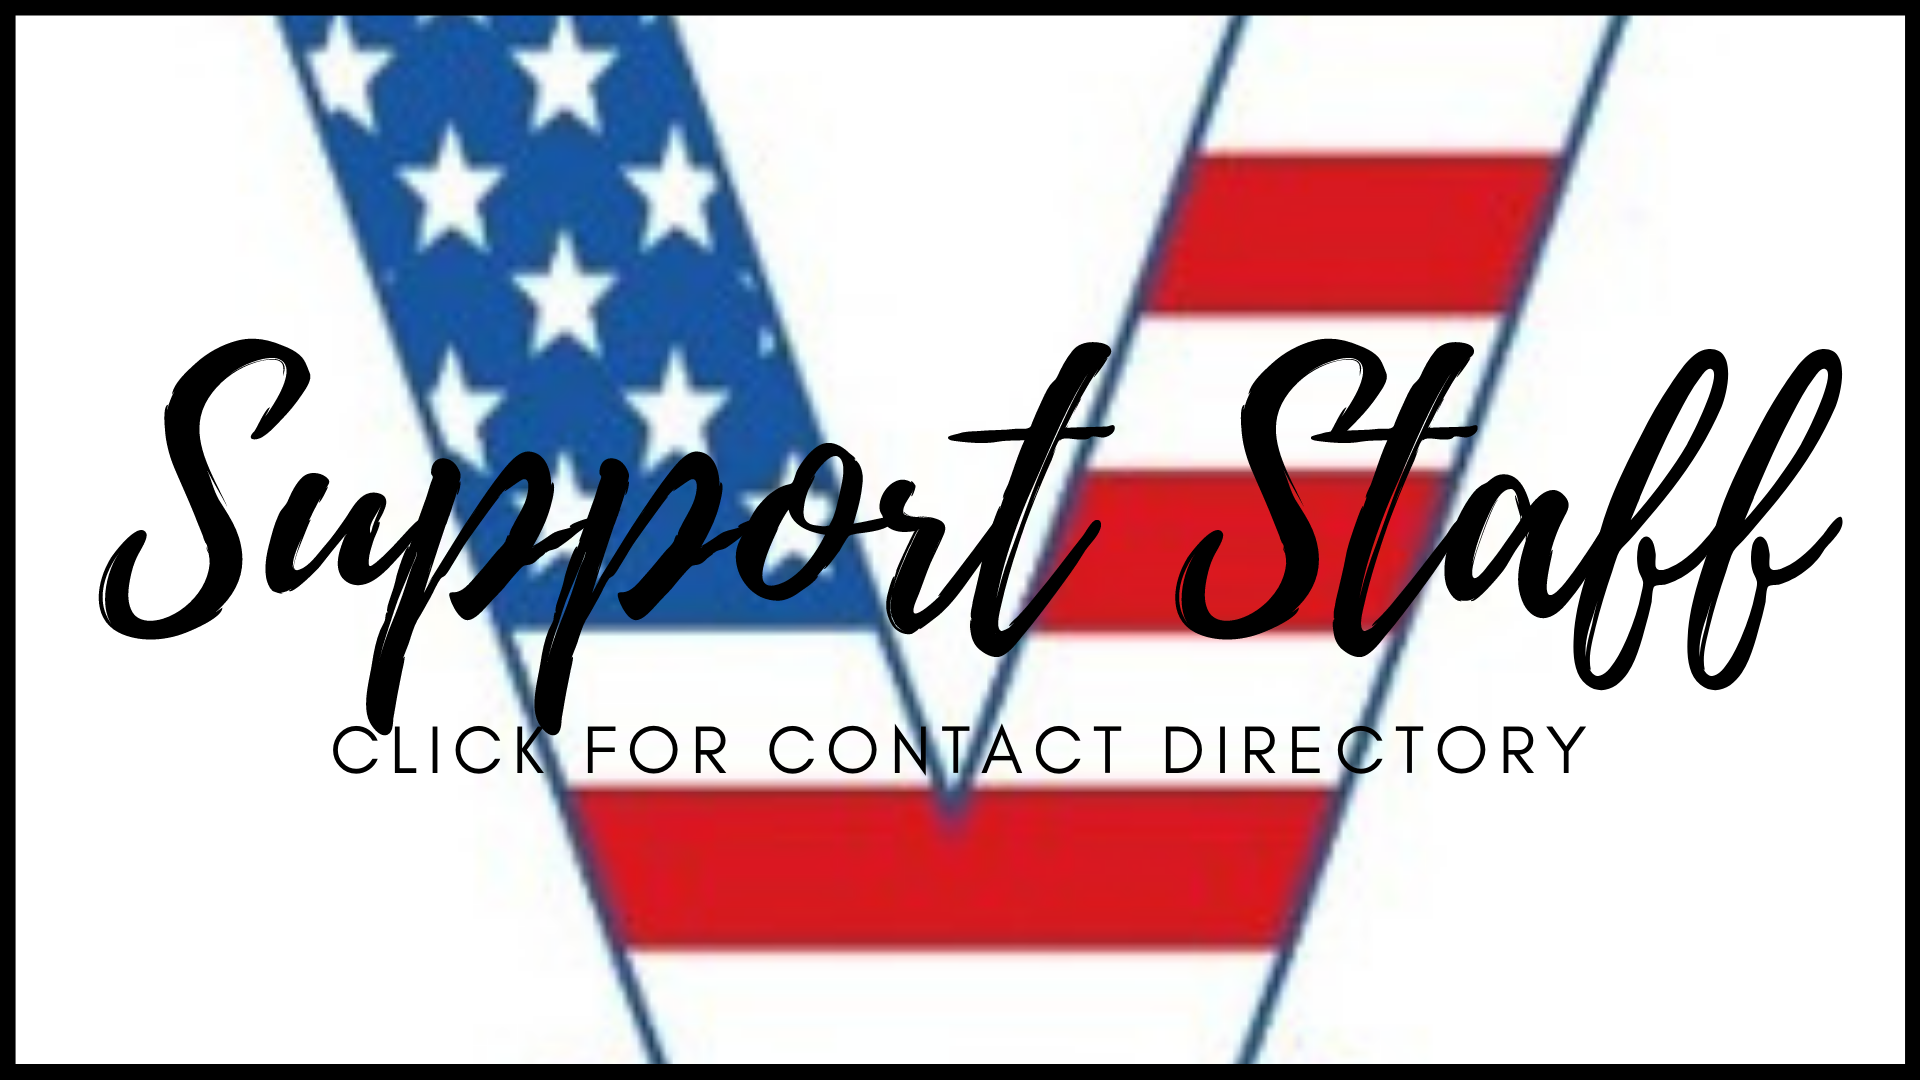 Support Staff link to contact directory